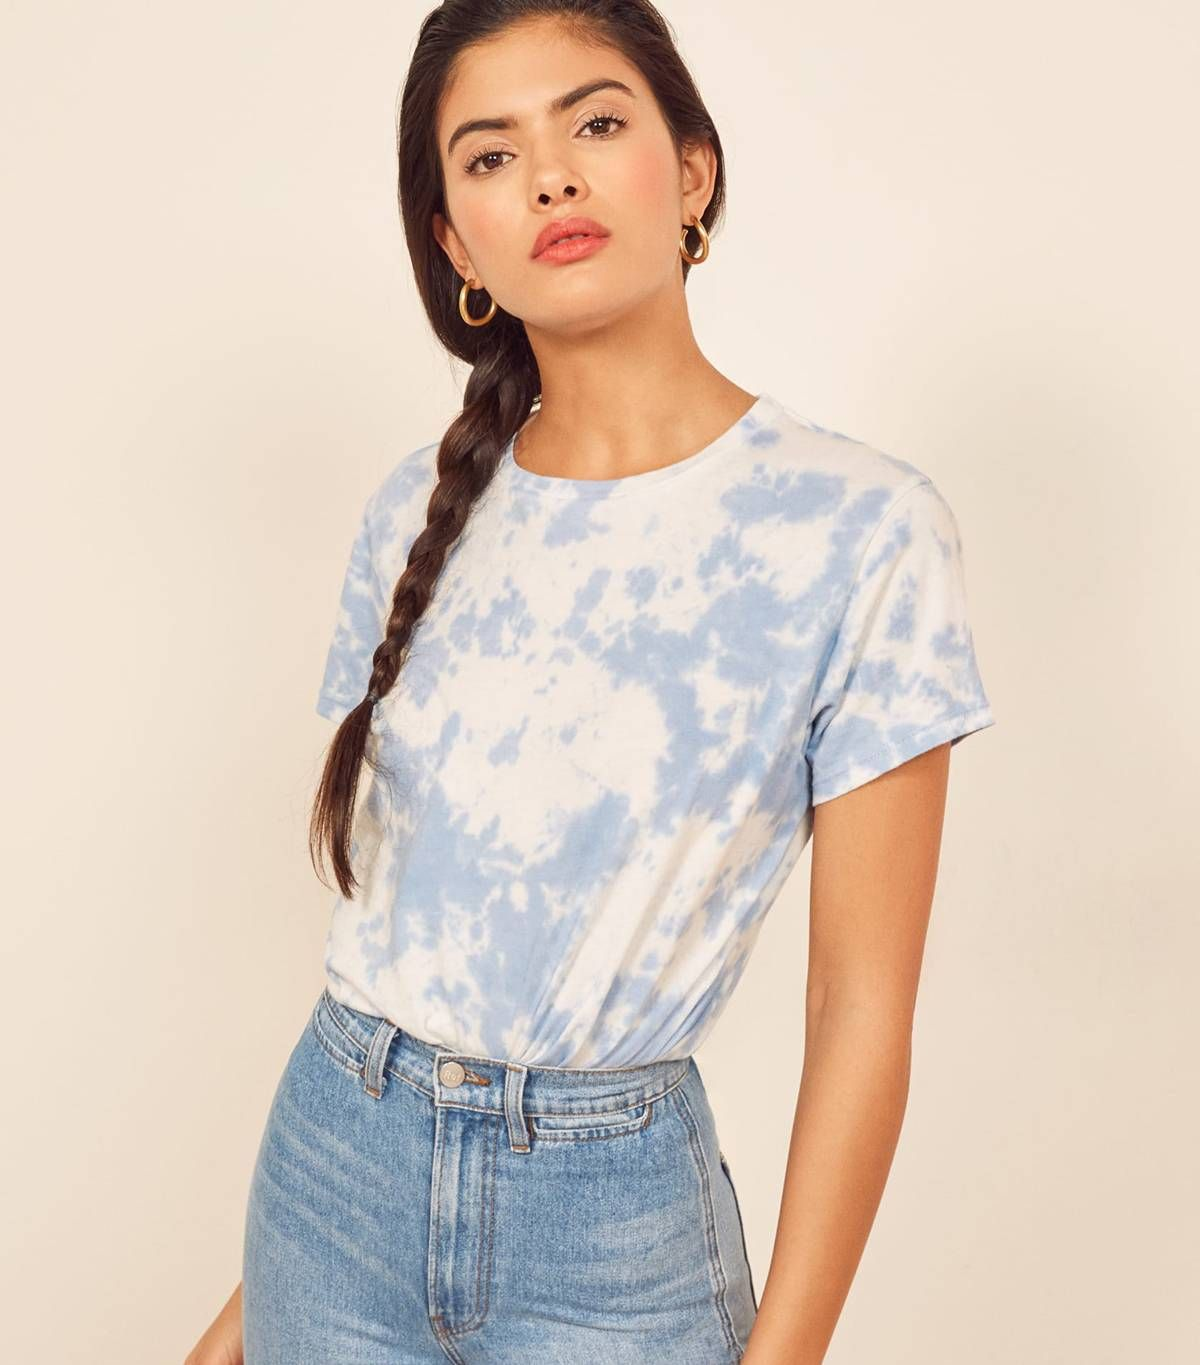 The Under 50 Reformation Item Everyone Is Buying For Spring Tie Dye Outfits Tie Dye Shirt Outfit Tie Dye [ 1365 x 1200 Pixel ]